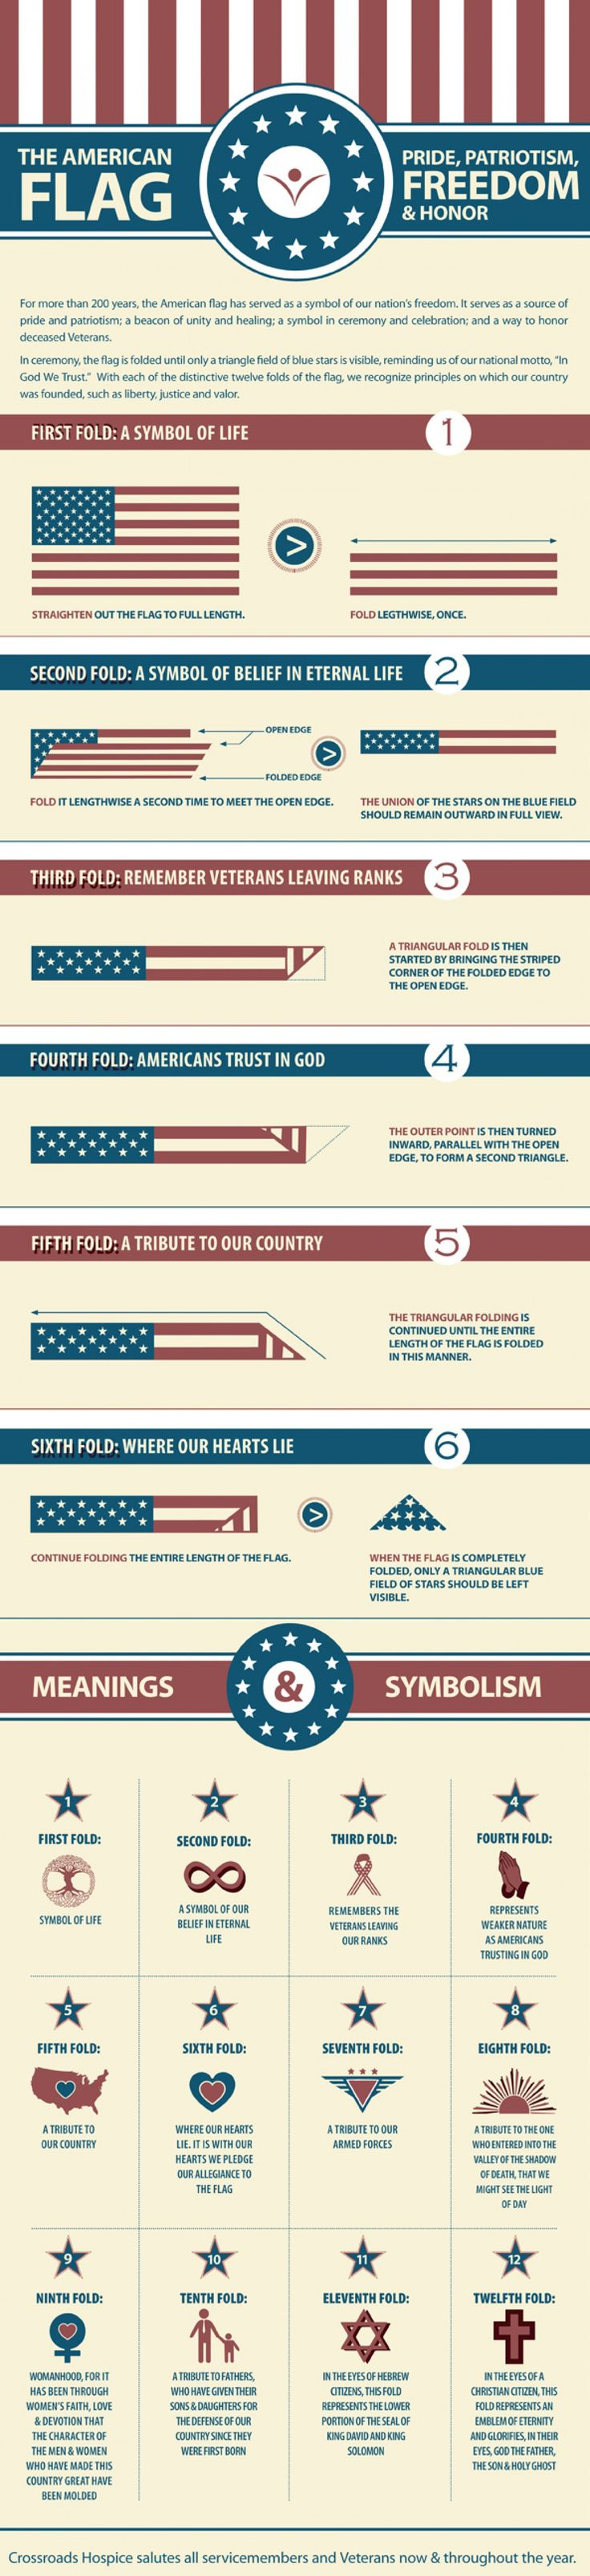 Chosen to give talks at many schools on patriotism + Flag Day as child. How to Fold the Flag Infographic